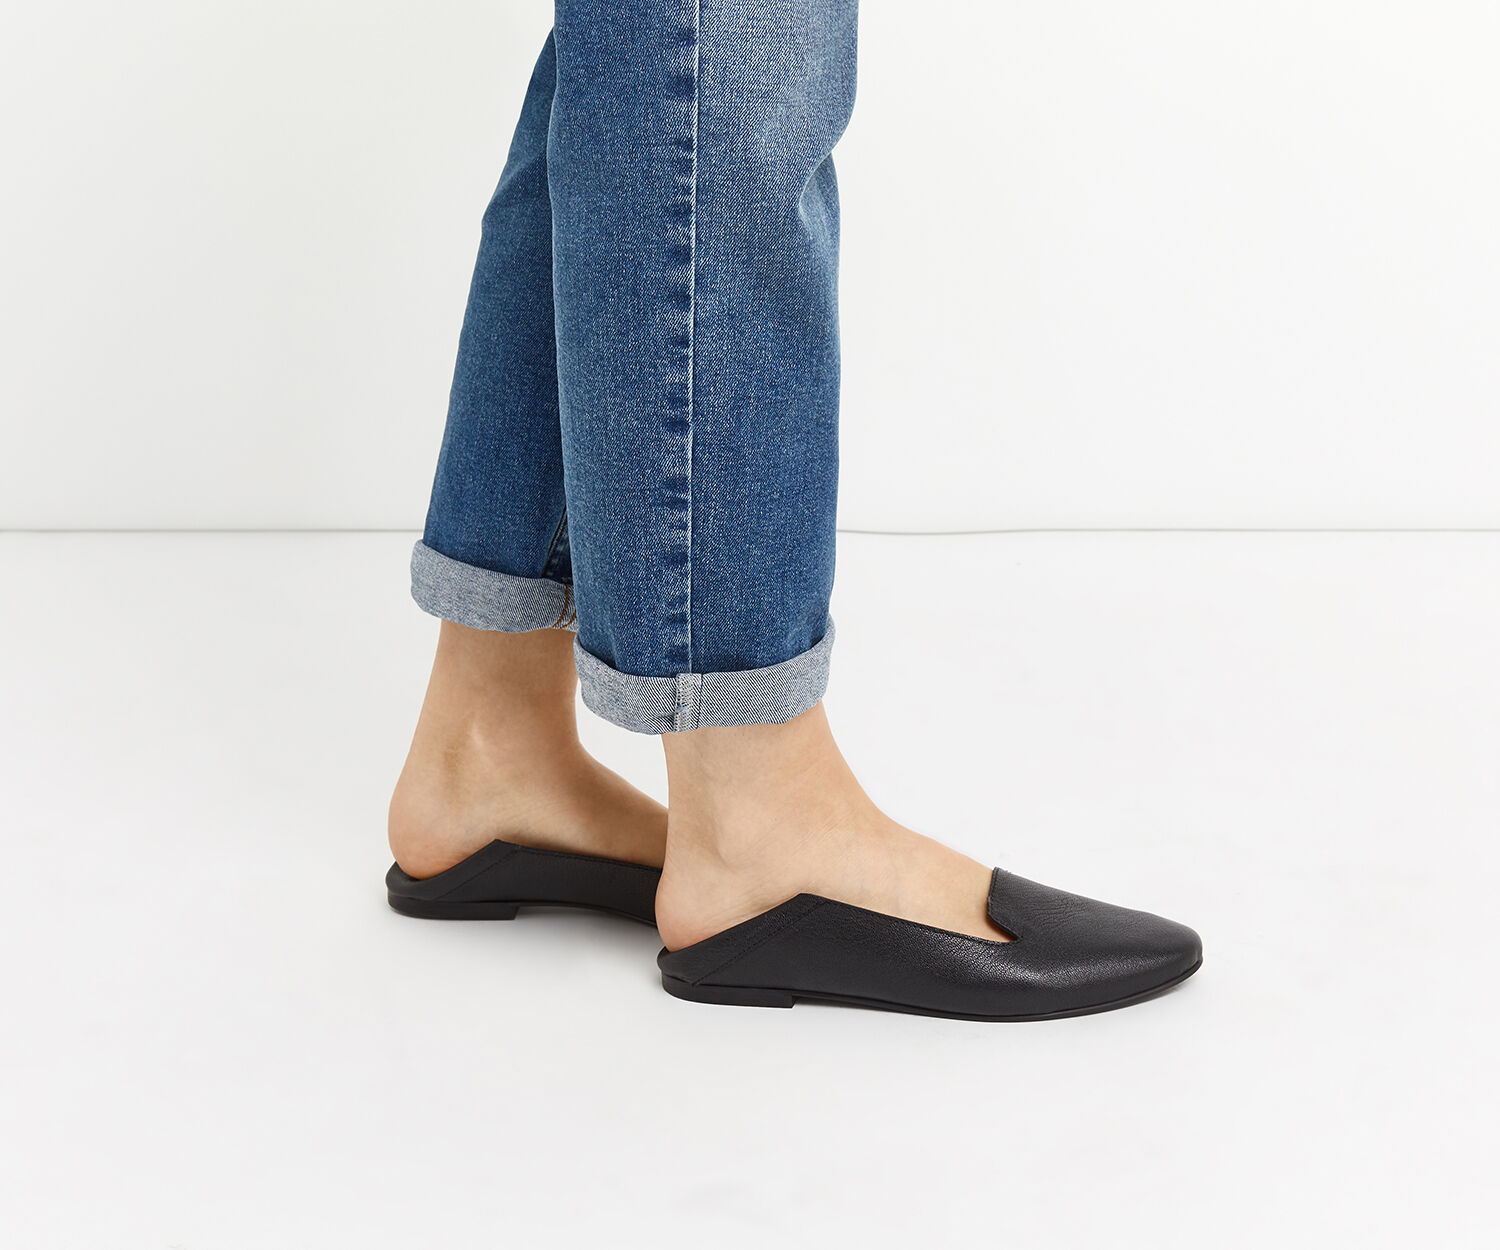 Oasis, LEATHER LILY SLIPPER Black 1